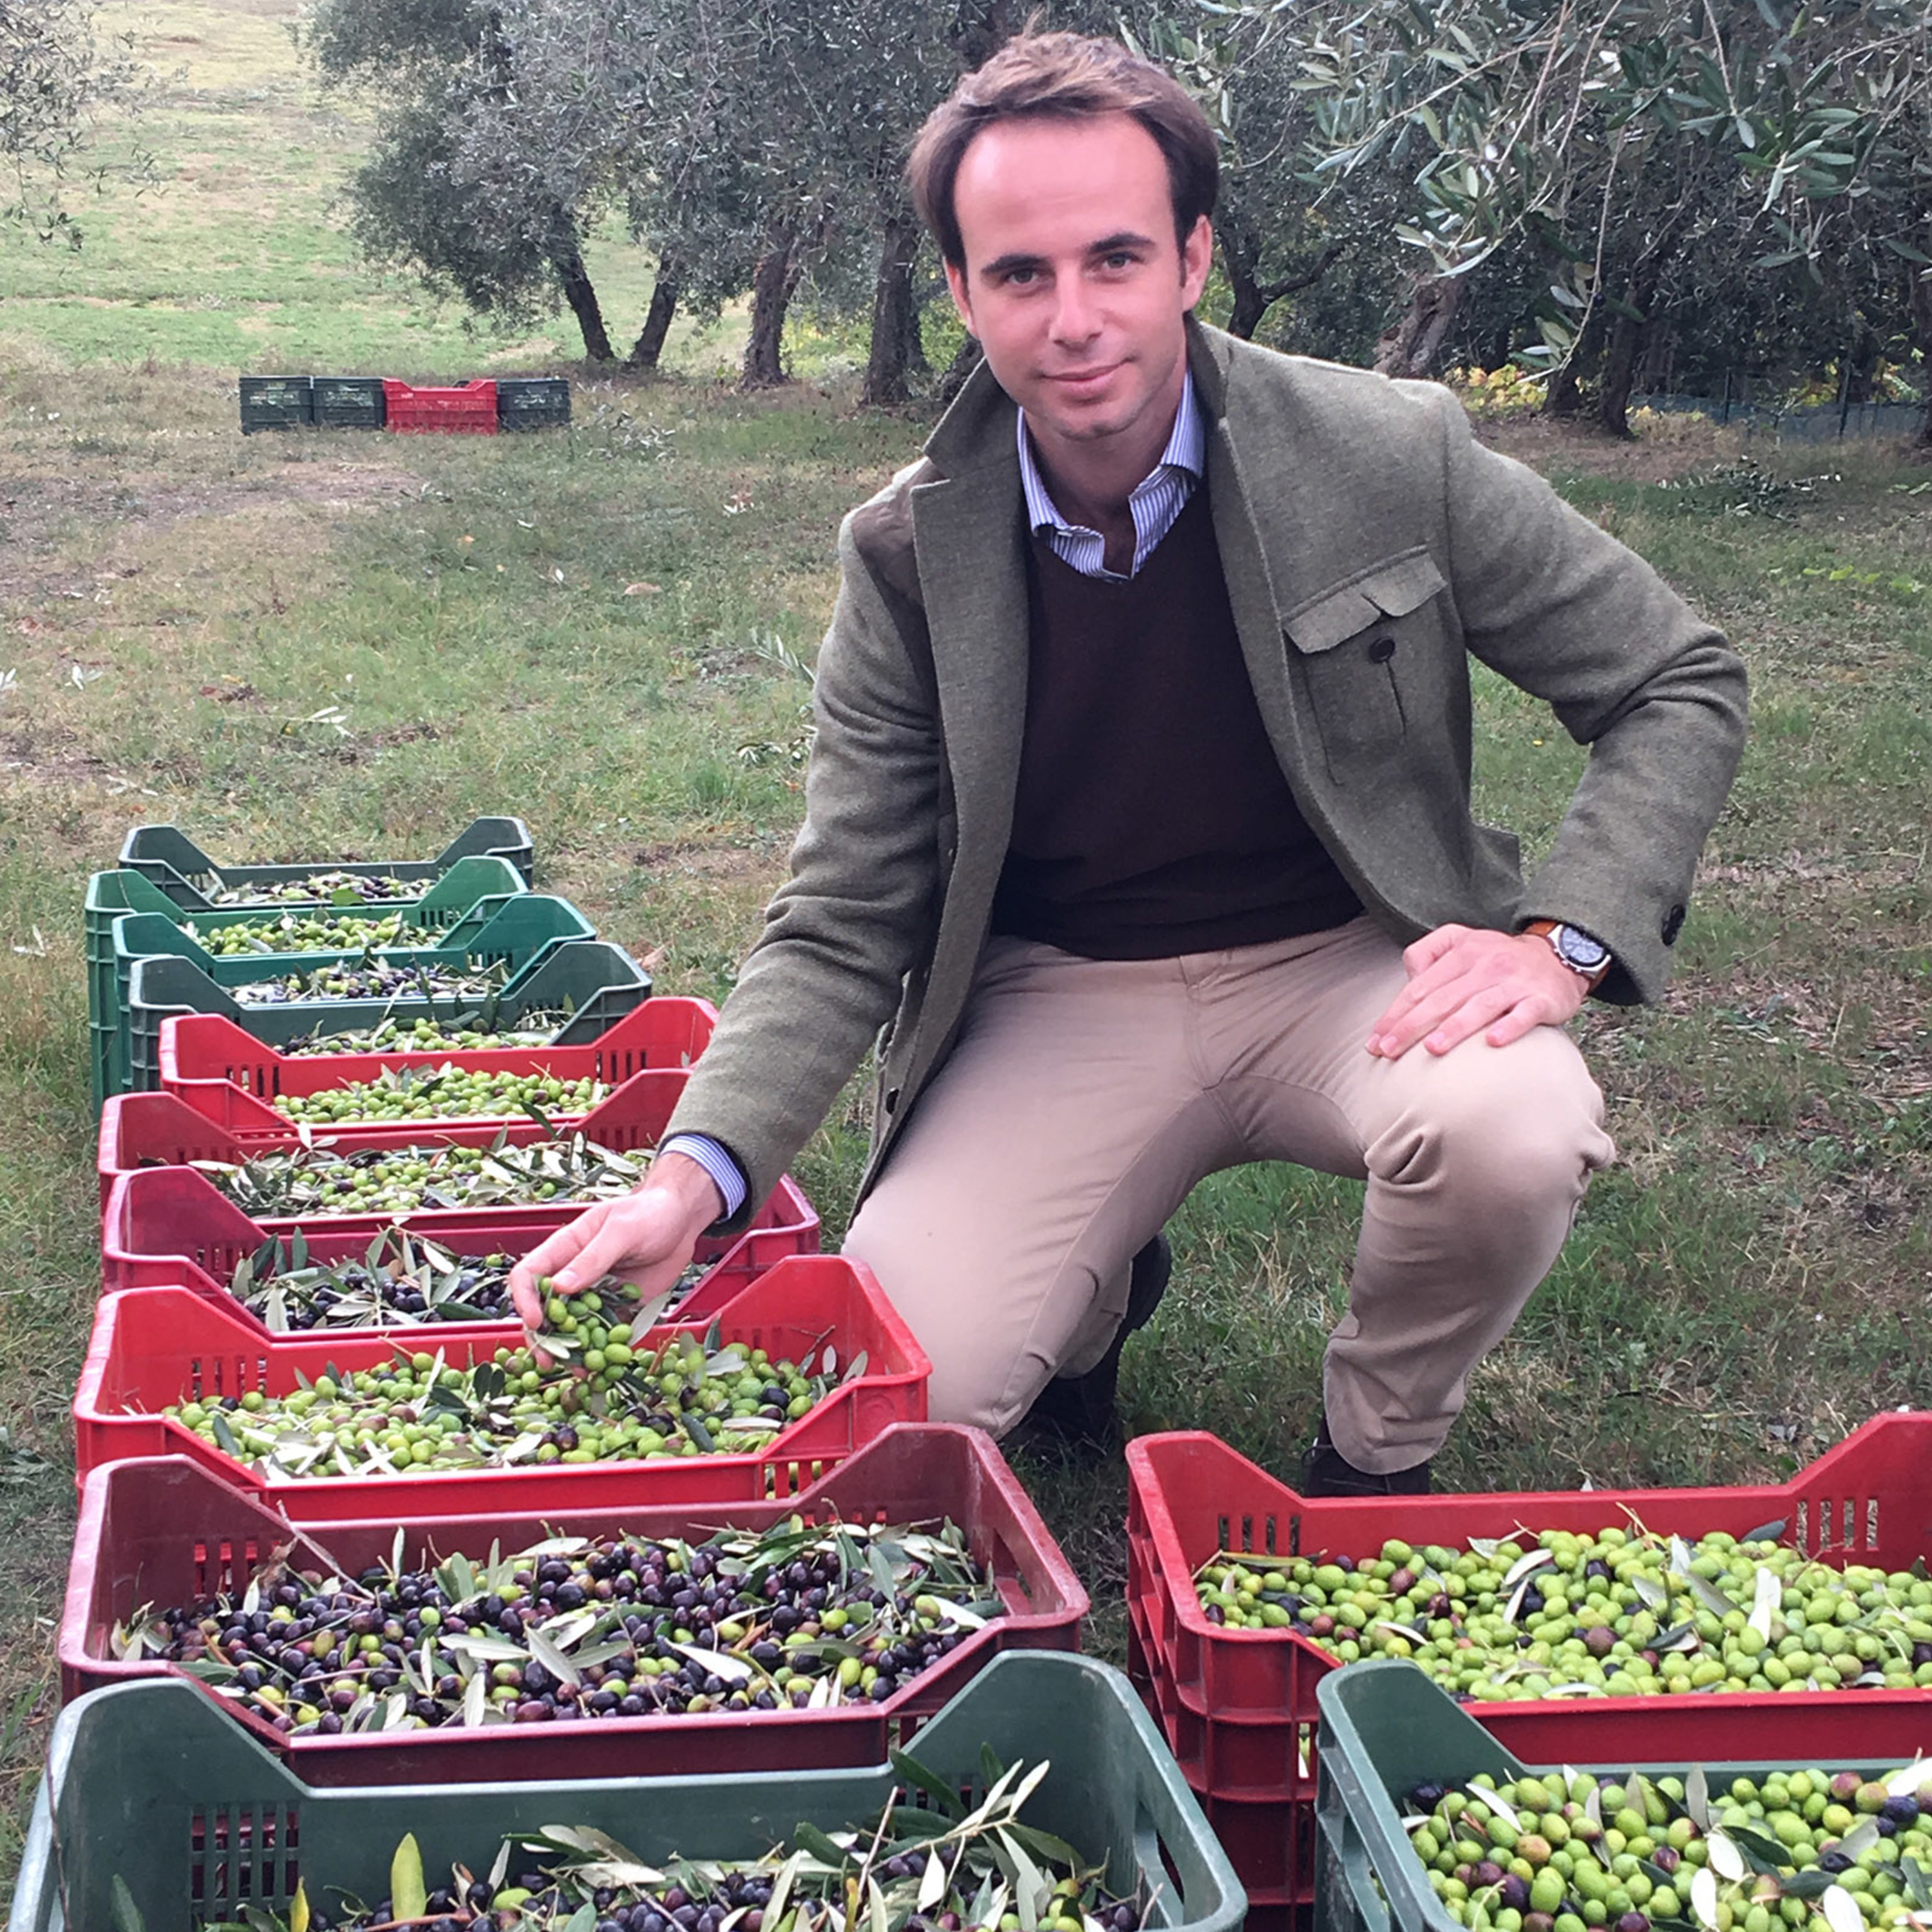 Episode 320: 30 generations of Olive Oil - Frescobaldi